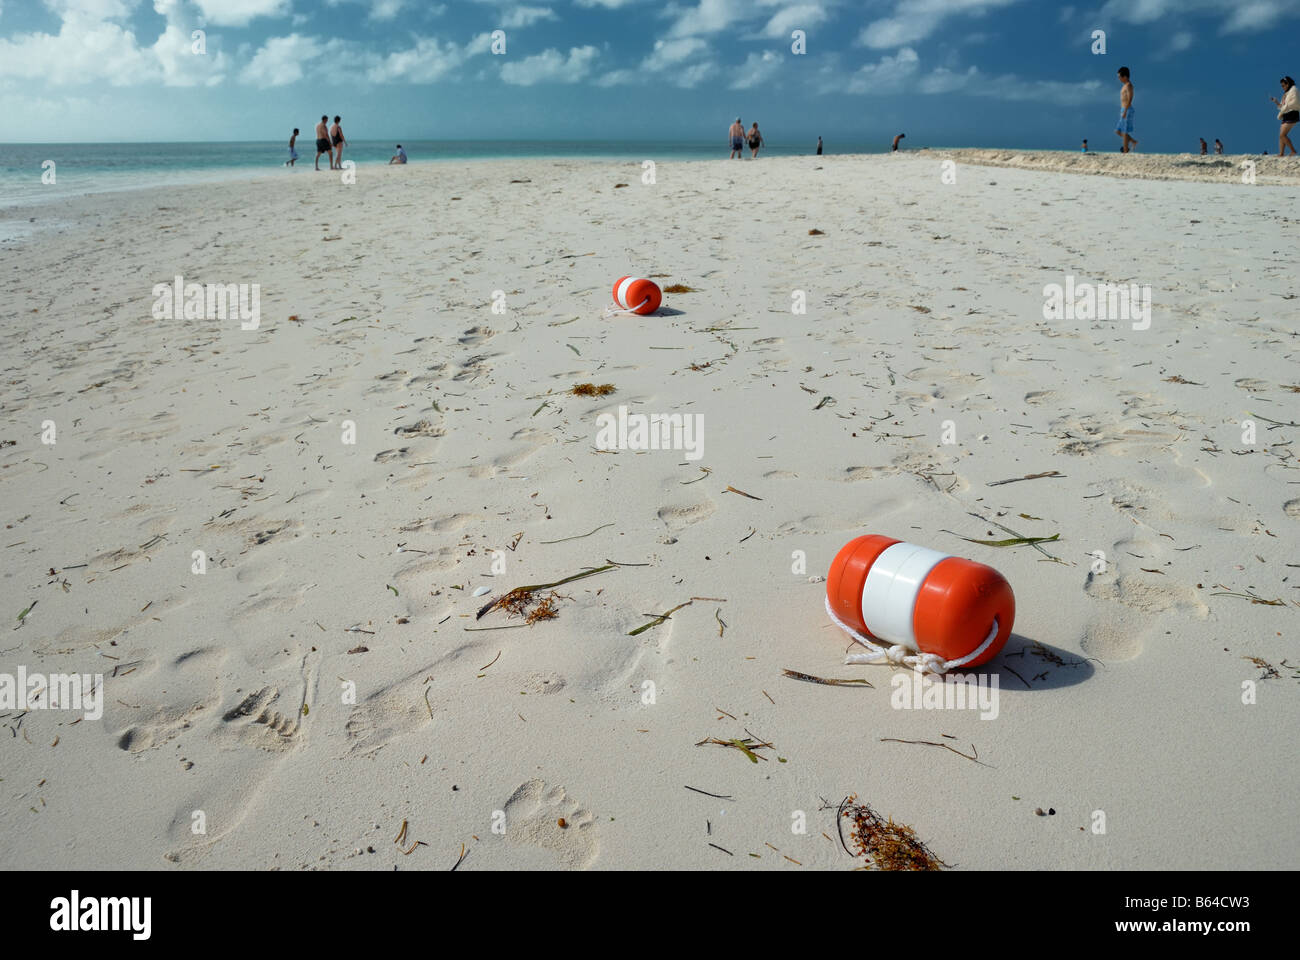 Bouys washed up on the sandy beach at Little Stirrup Cay, Bahamas, with people in the distance. - Stock Image